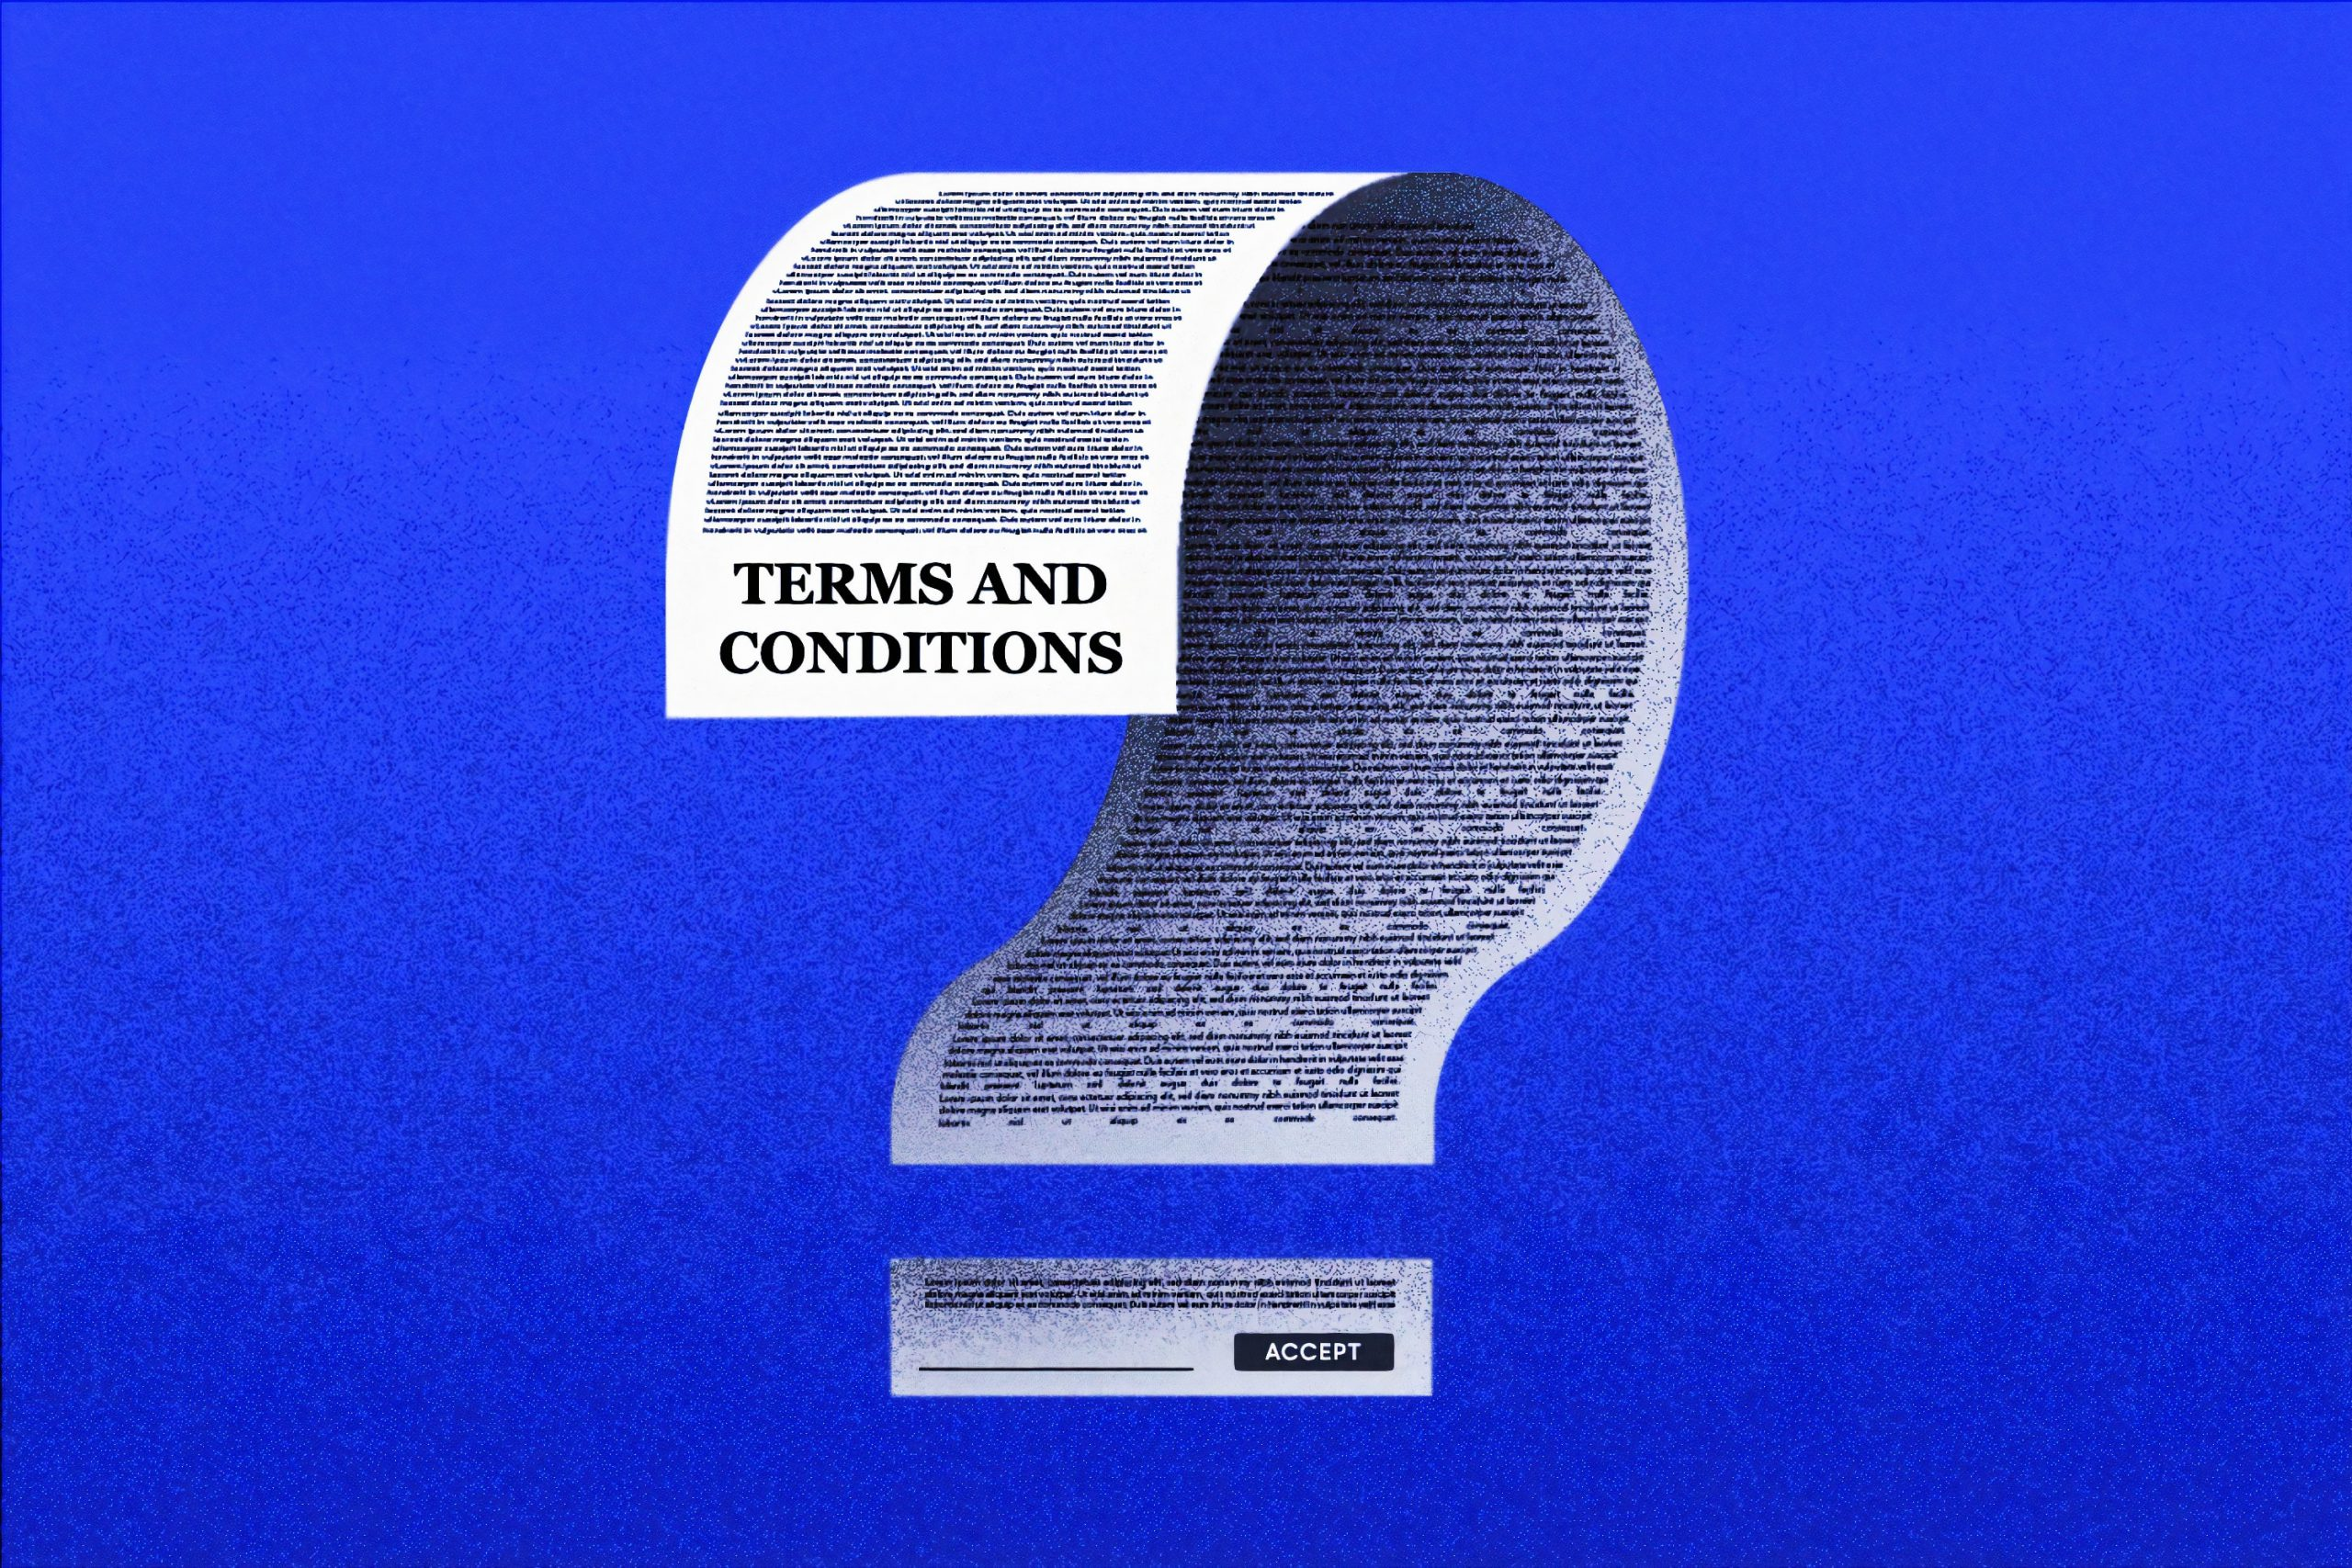 5 Reasons Why You Need Terms and Conditions